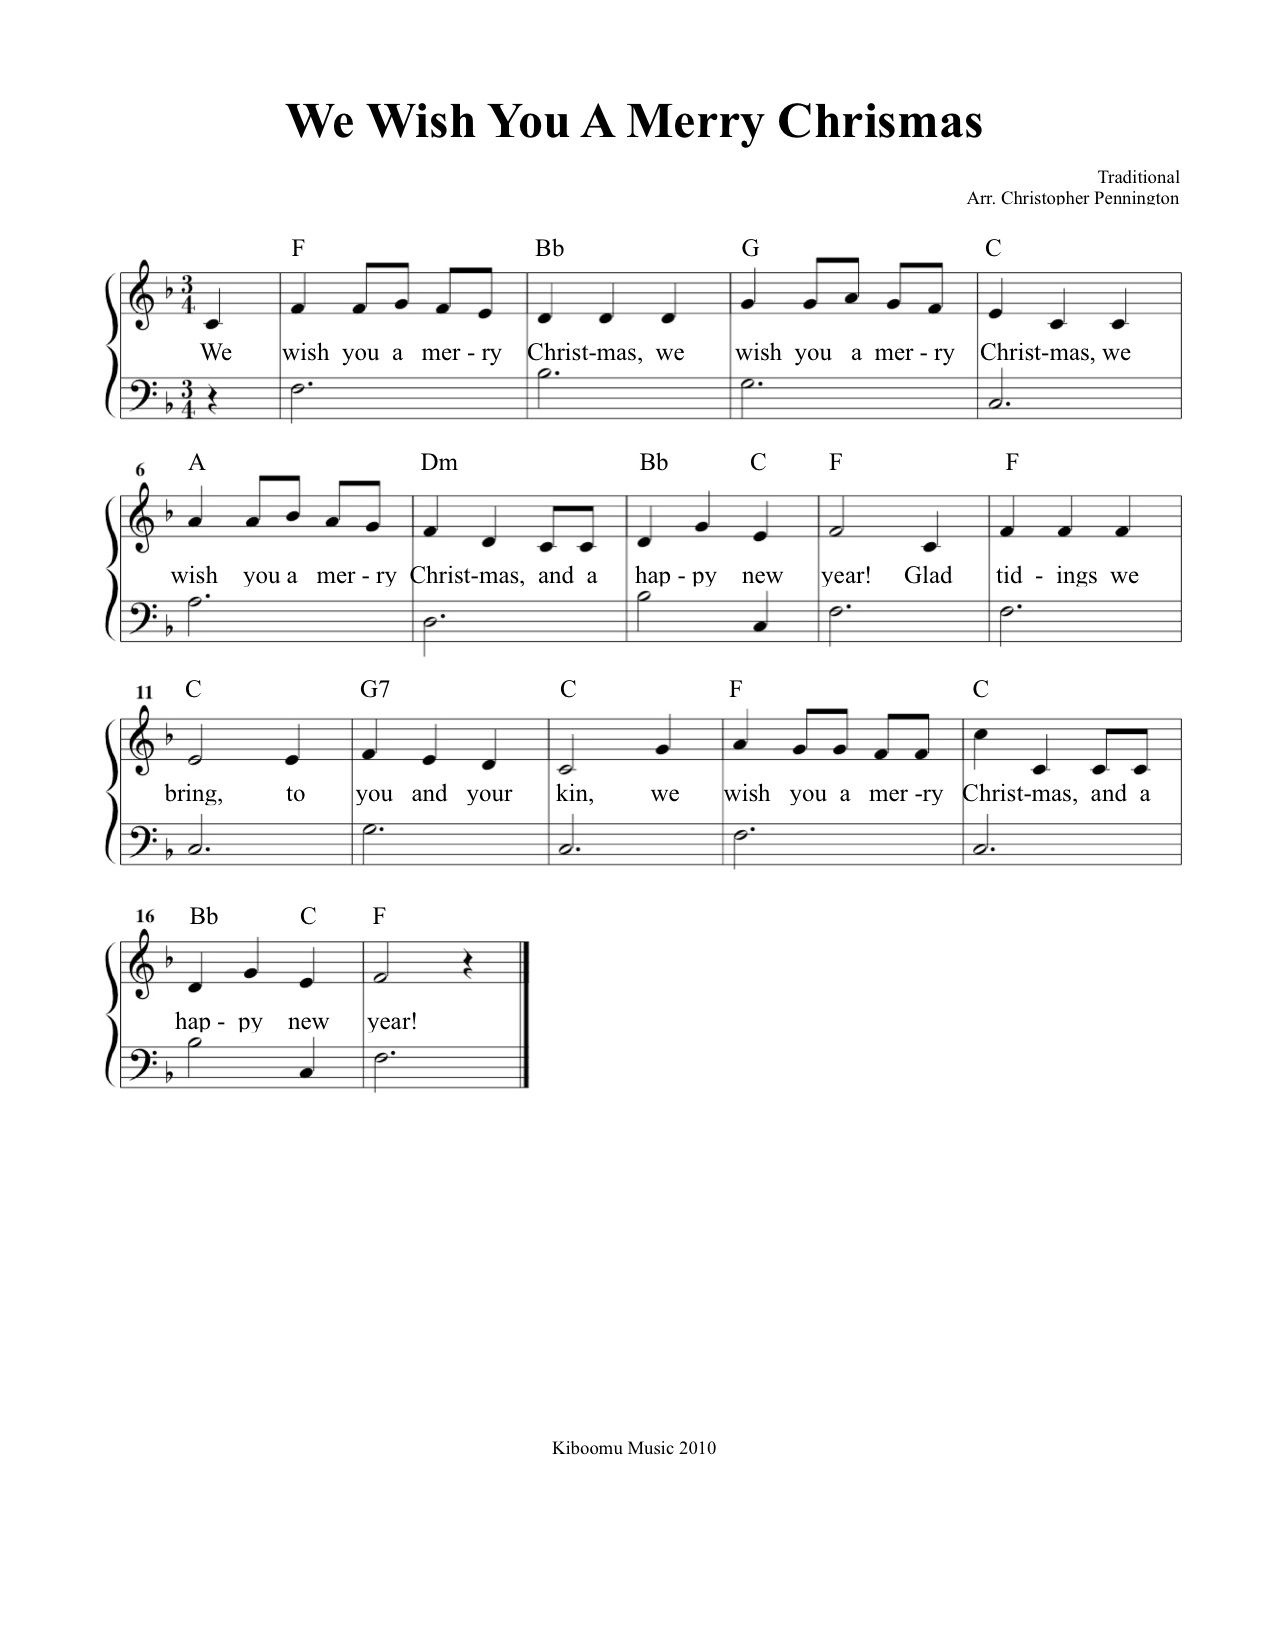 We Wish You A Merry Christmas Sheet Music And Song For Kids! | Music - Free Christmas Sheet Music For Keyboard Printable